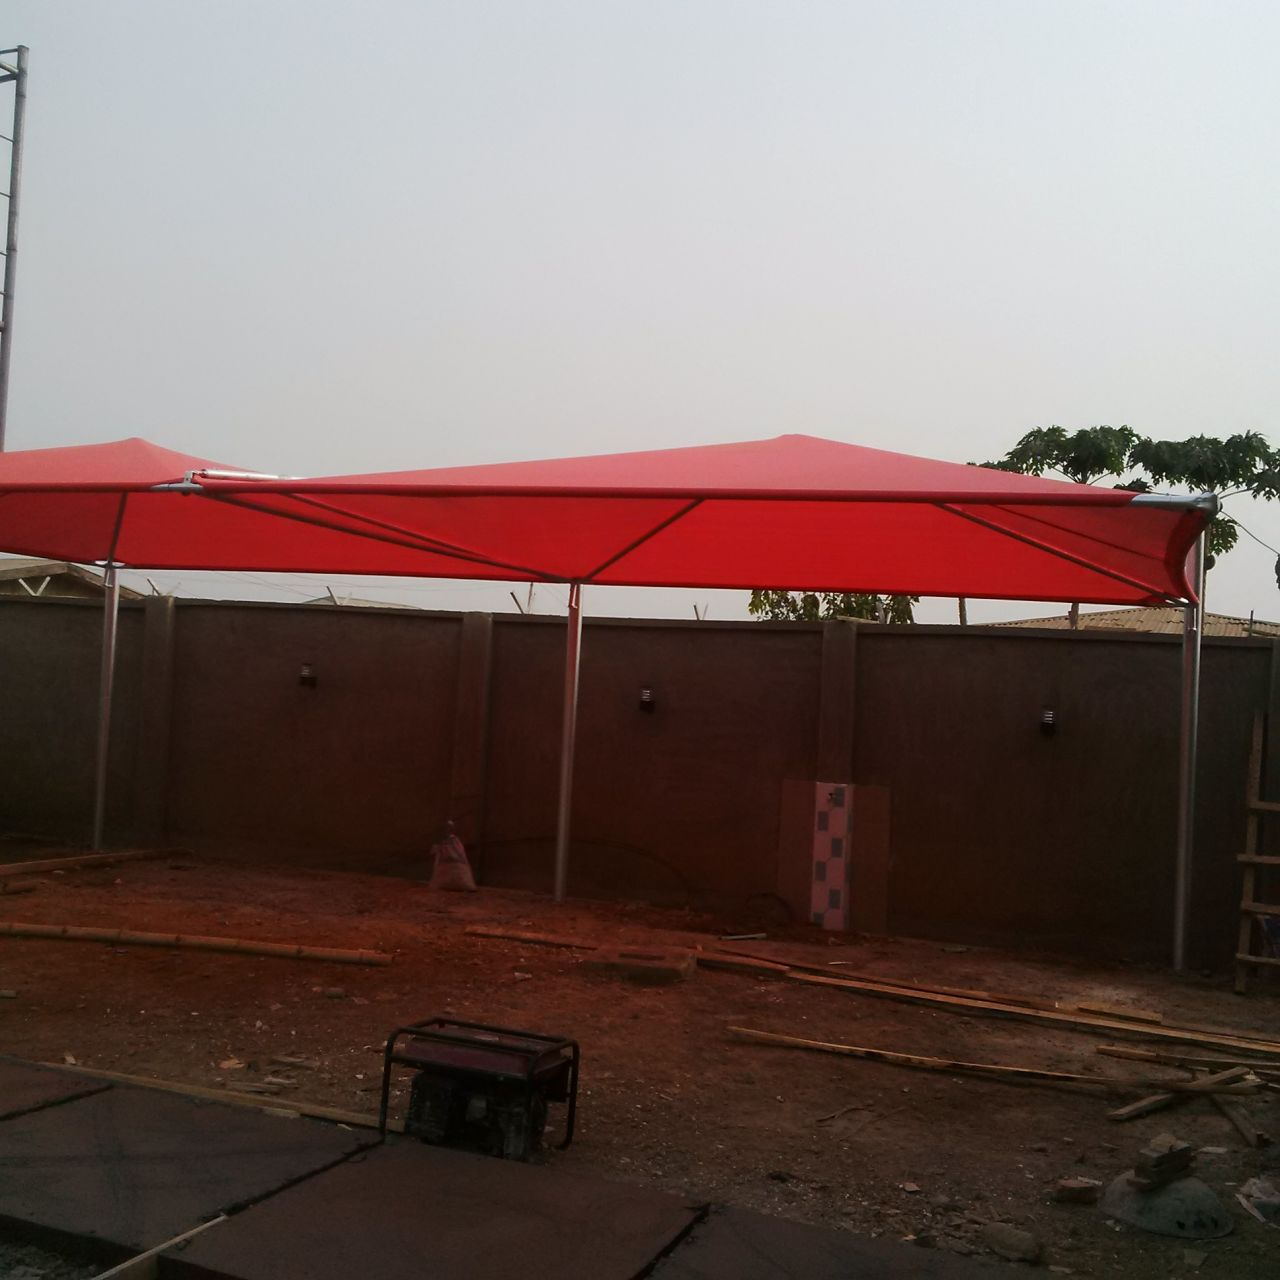 Carport Modular Carports And Shade Structures Arx: Carports, Shade Covers And Portable Canopies.